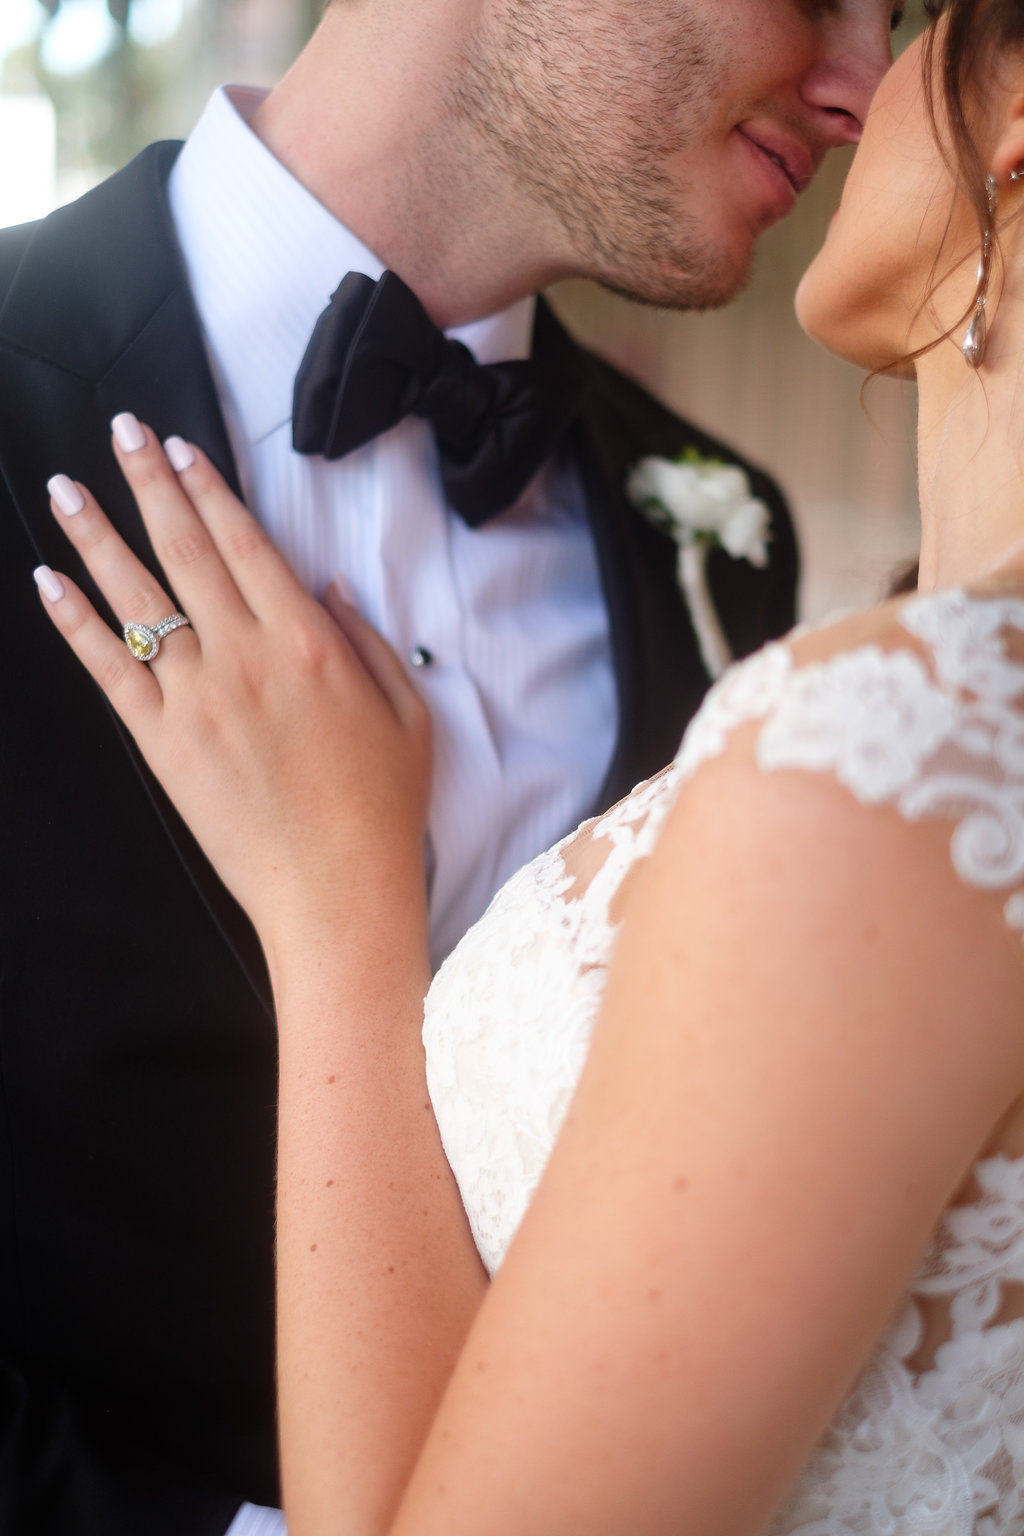 Outdoor Bride and Groom Wedding Portrait with Yellow Canary Diamond Pear Shaped Ring | Tampa Bay Wedding Photographer Marc Edwards Photographs